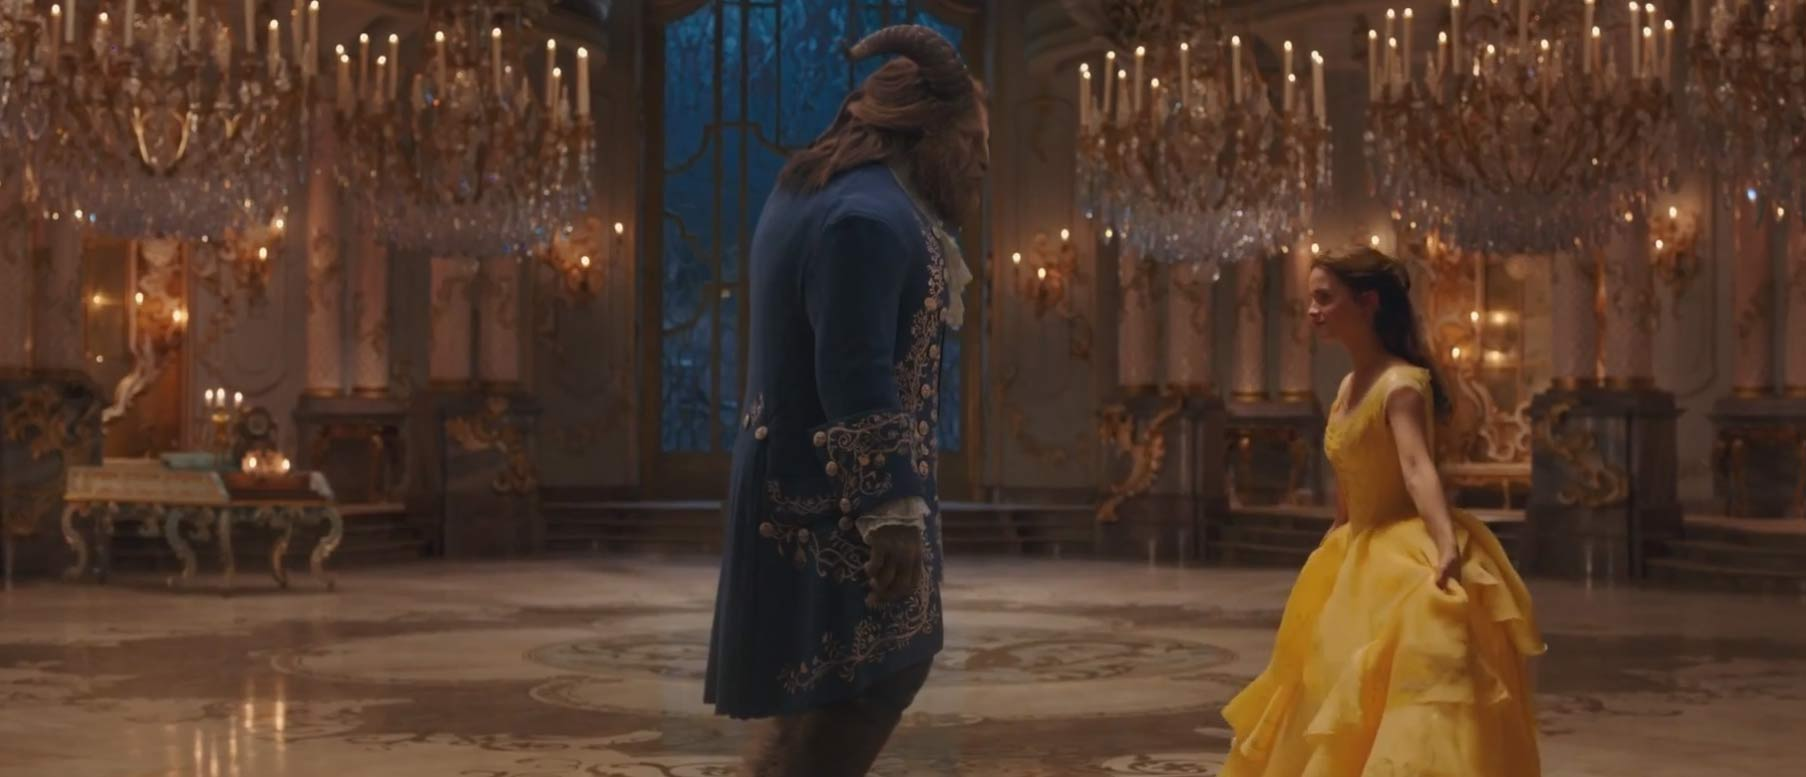 Beauty and the Beast Feature Trailer Screen shot 2